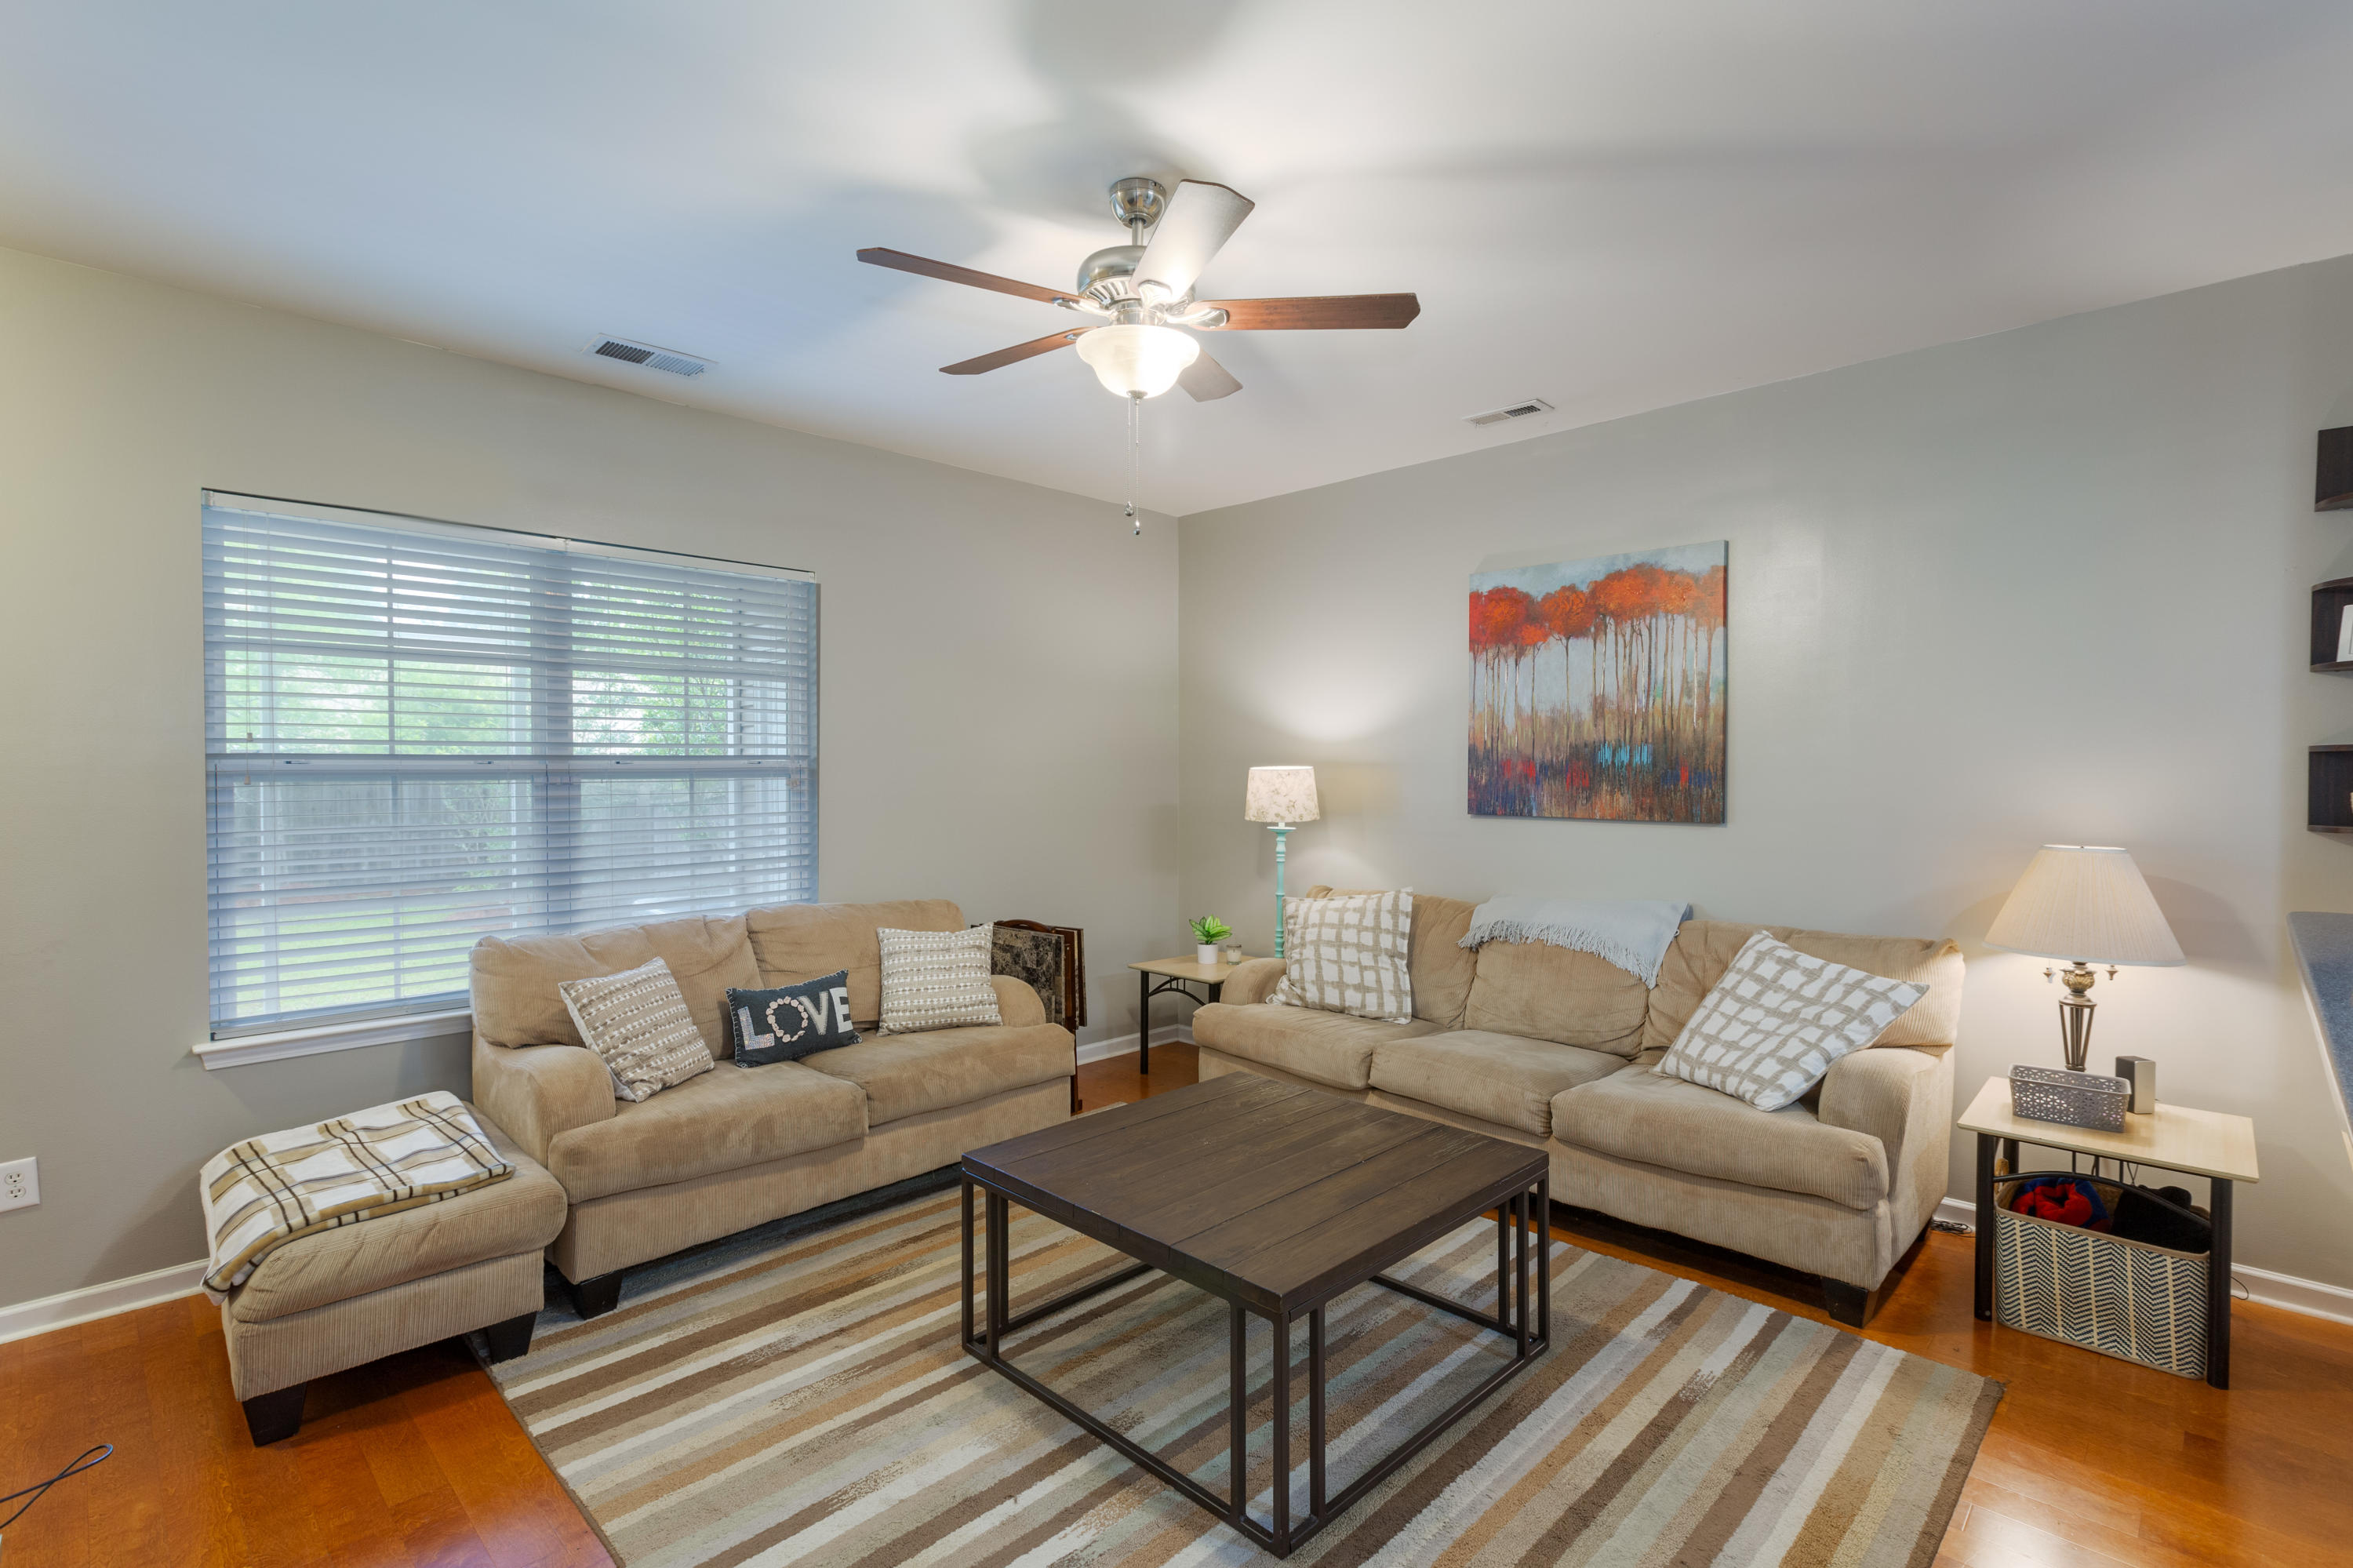 Berkeley Commons Townhomes Homes For Sale - 113 Lamplighter, Summerville, SC - 22